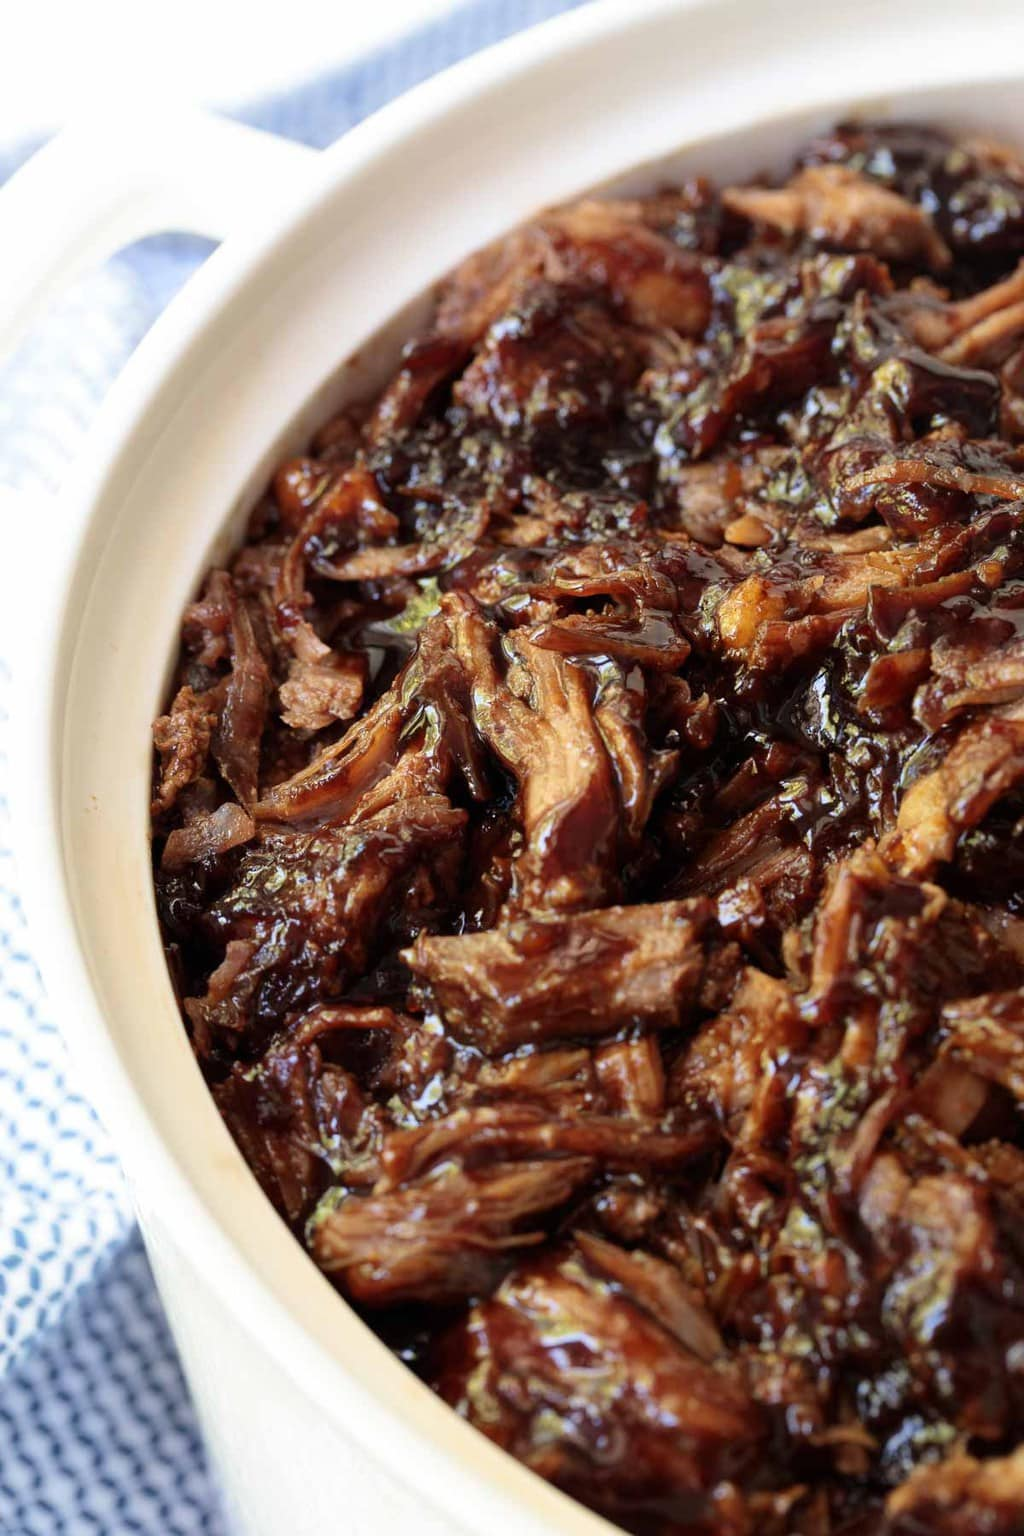 Overhead view of pulled pork with a brown sugar balsamic sauce in a white bowl